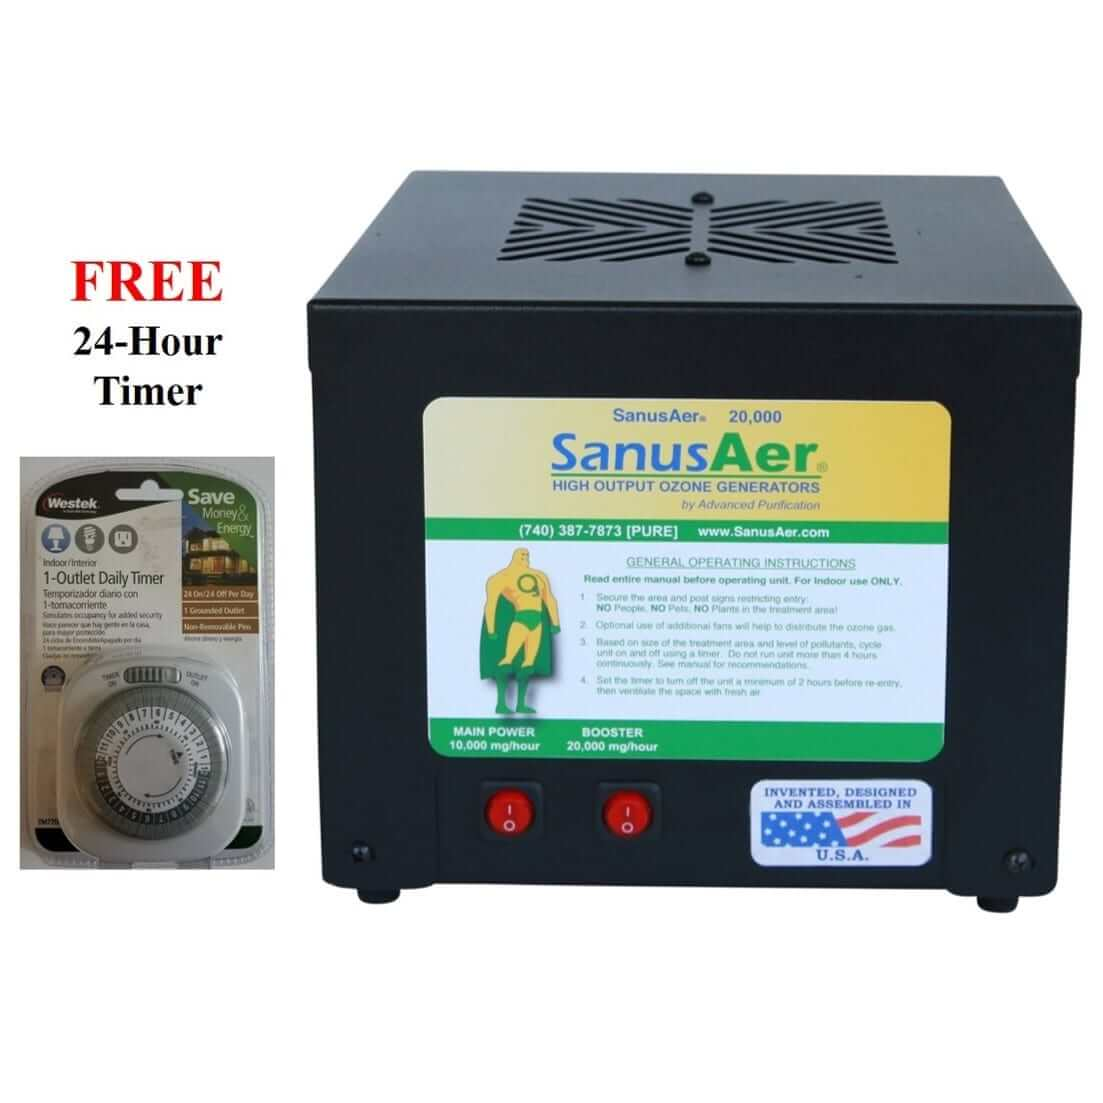 Remove unwanted odors at their source such as mold odors, mildew odors, pet odors, smoke odors, cooking odors, chemical odors, VOCs or Volatile Organic Compounds, skunk odors, crime scene clean up, bingo hall odors, funeral homes, workout facilities.